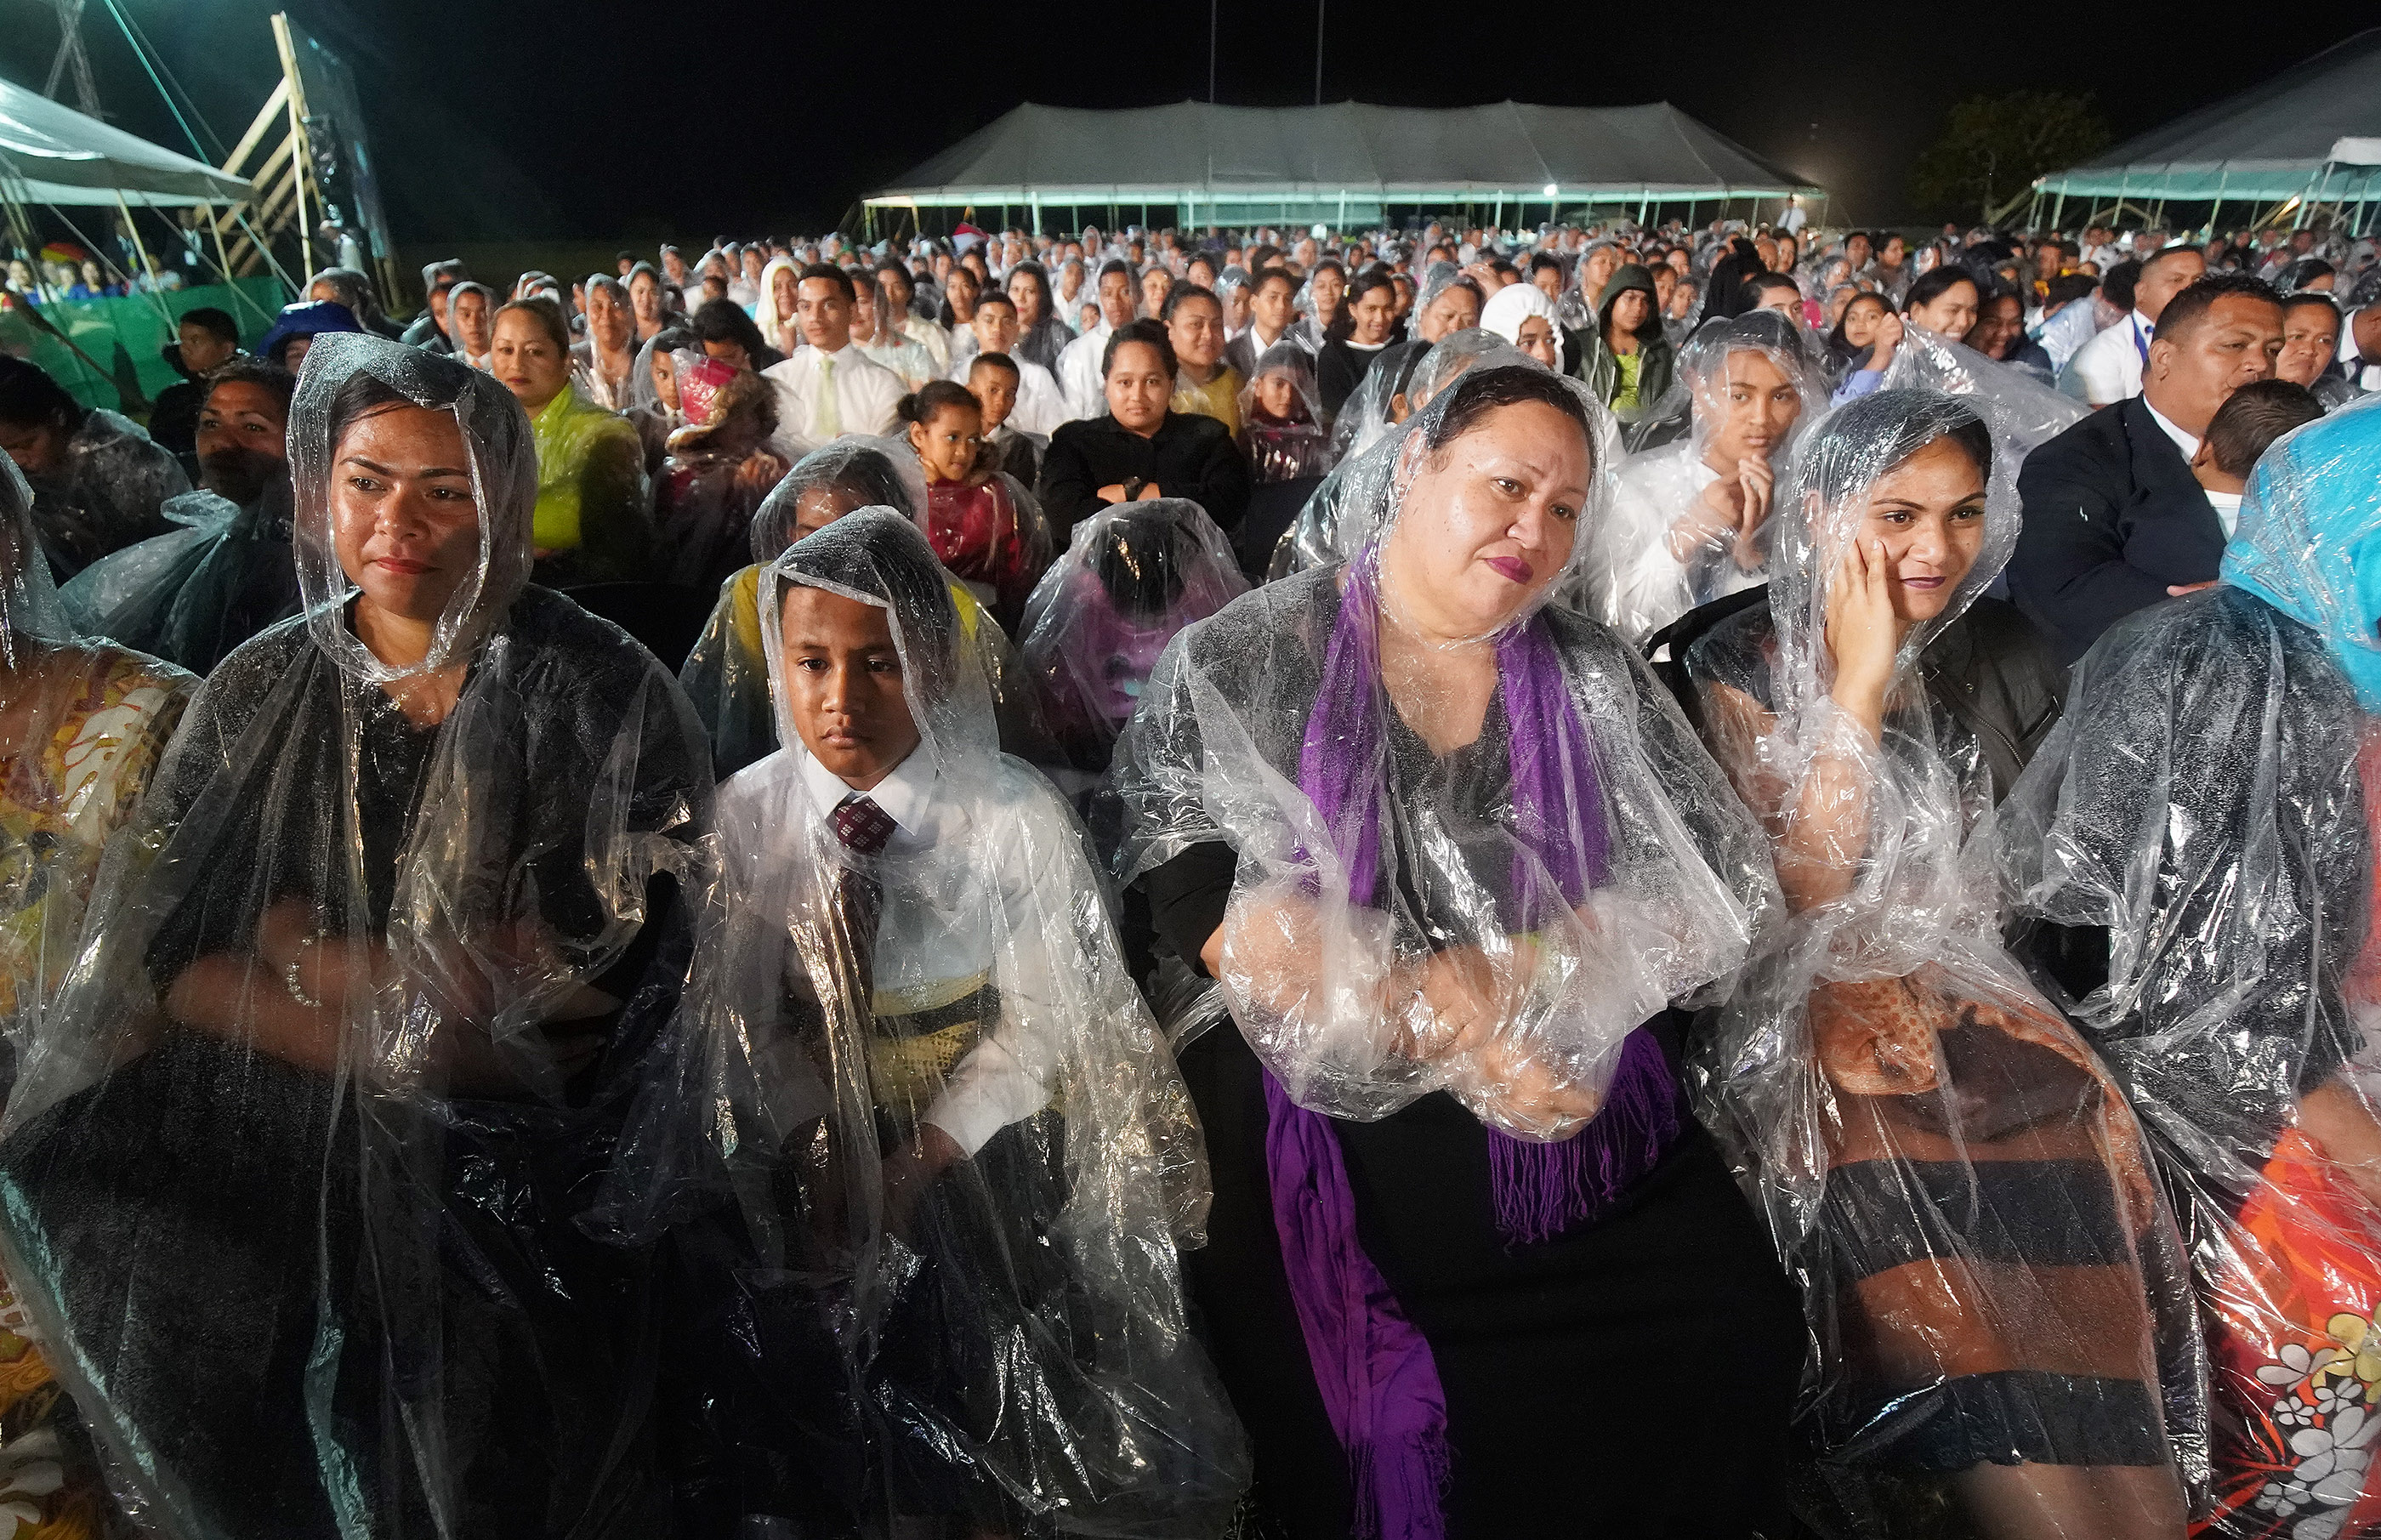 Attendees sit in the rain during a devotional in Nuku'alofa, Tonga, on May 23, 2019.